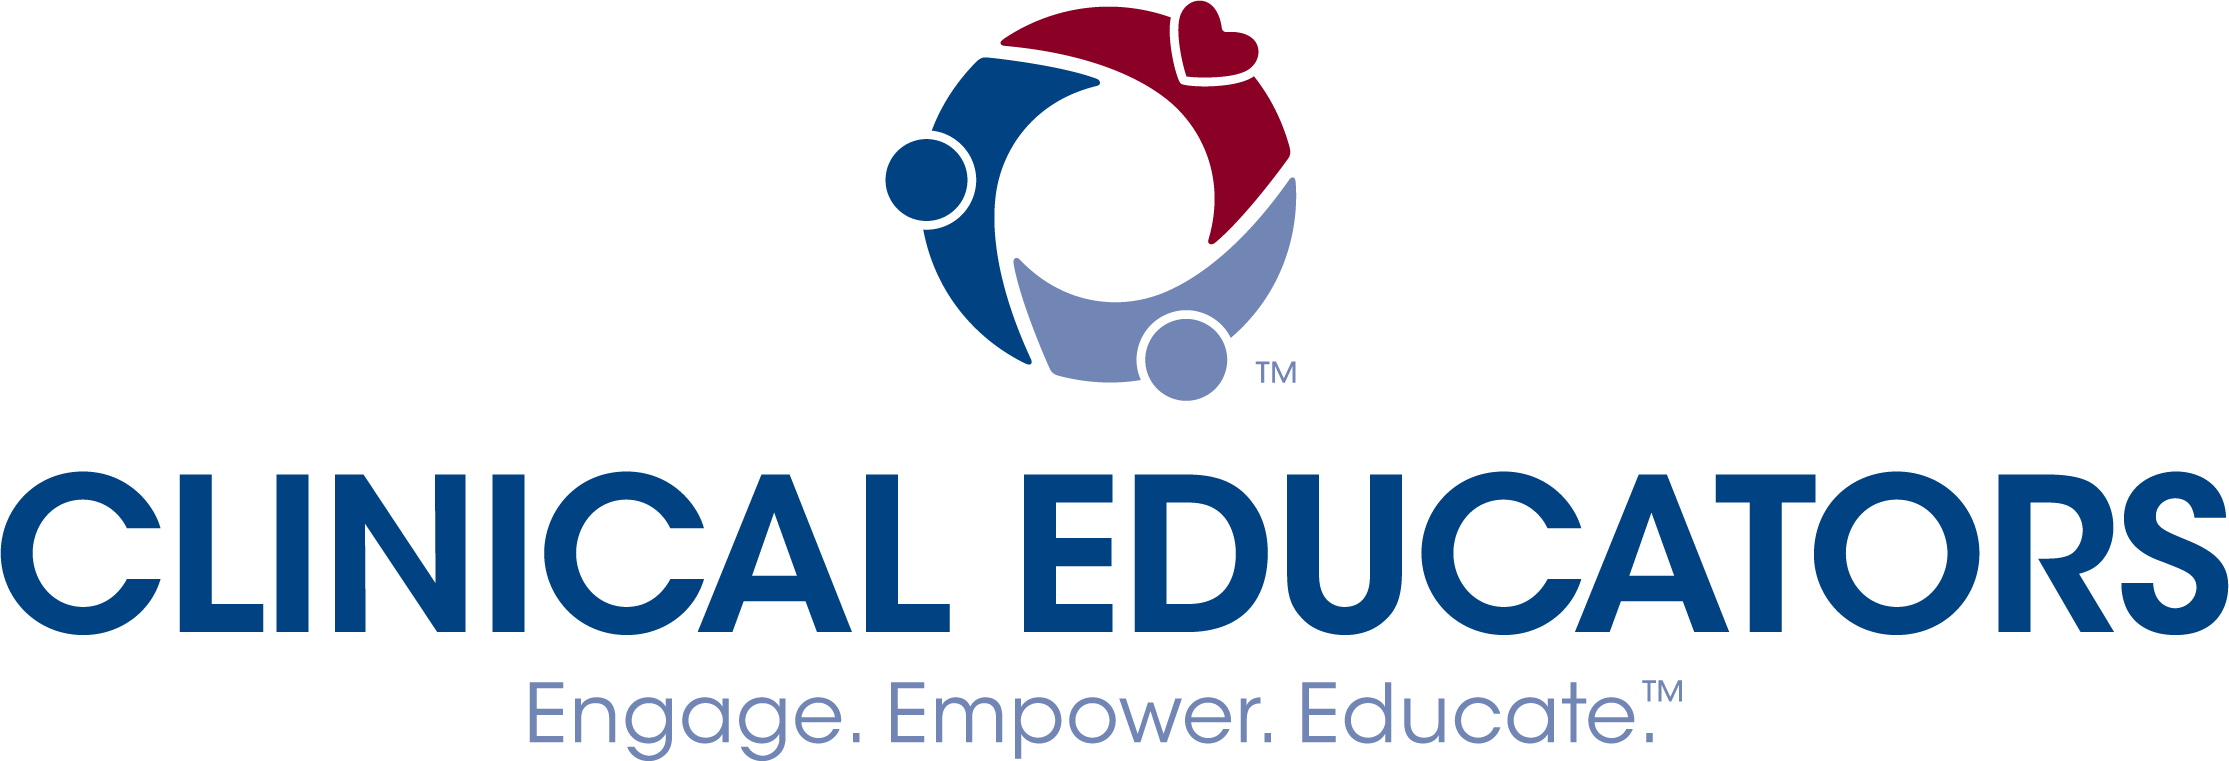 Clinical educators logo